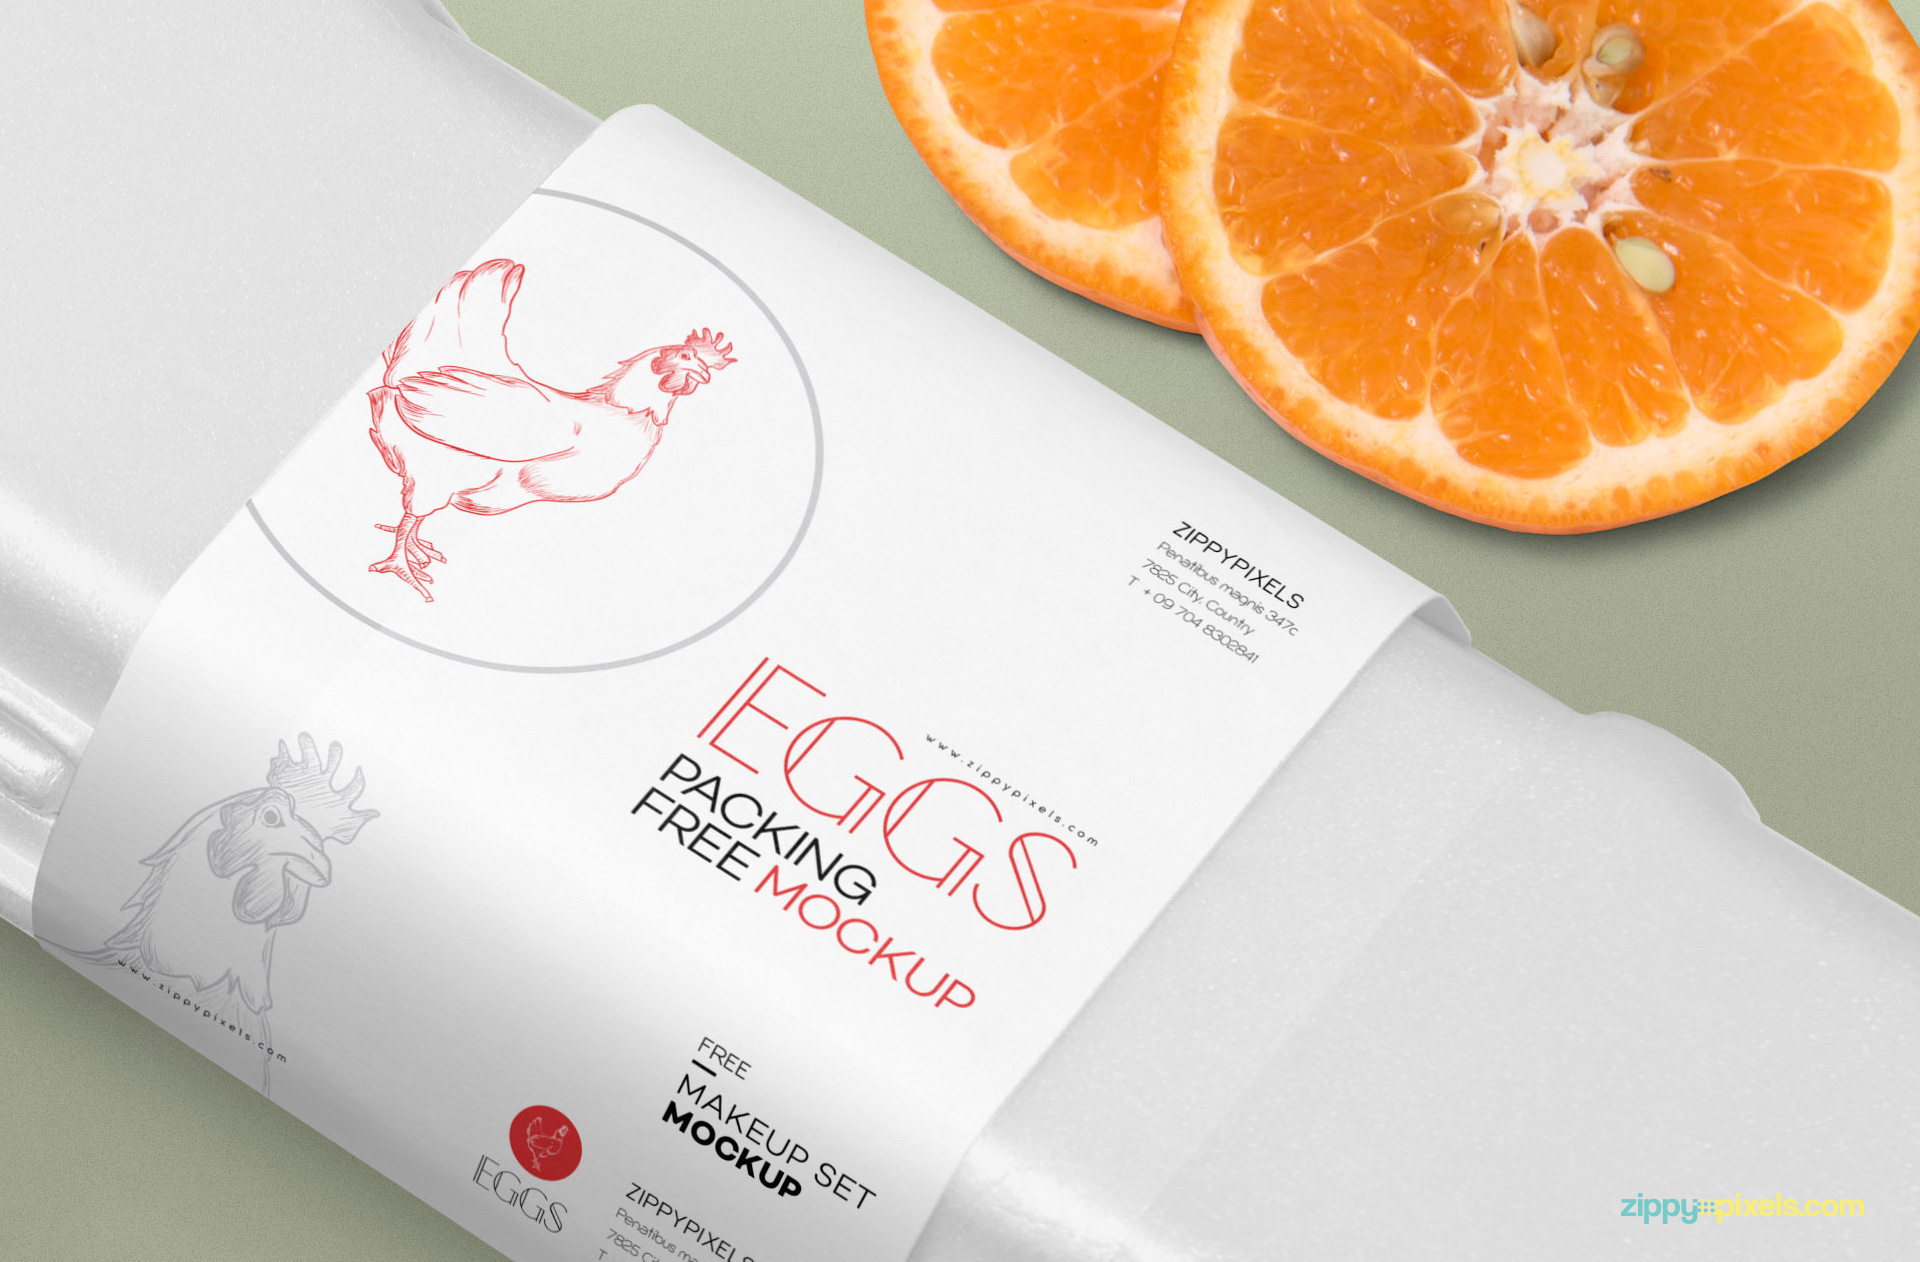 Packaging sleeve of the egg mockup.